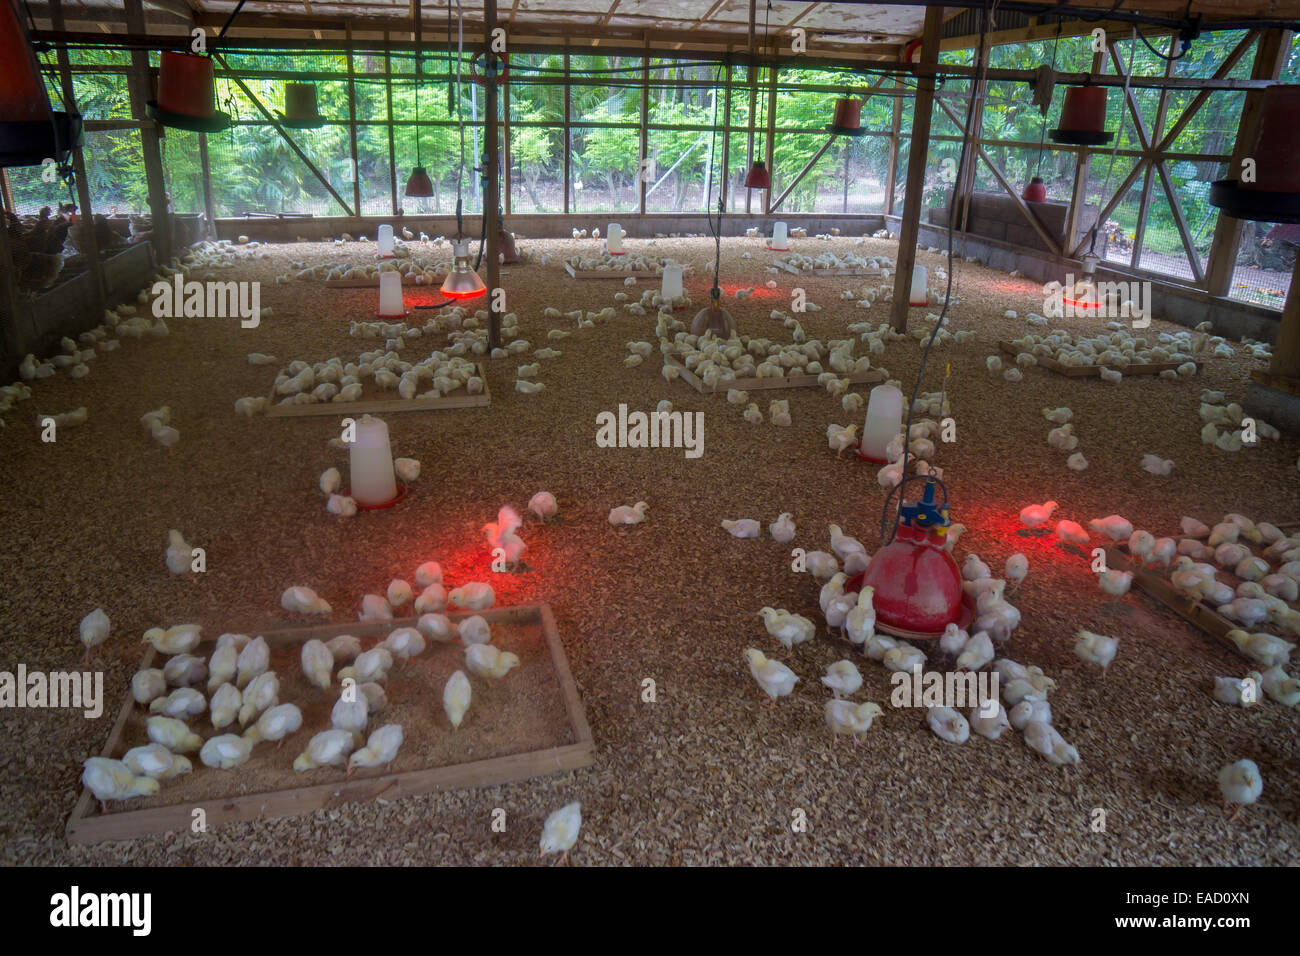 Chicks on a poultry farm, Denis Island, Seychelles - Stock Image